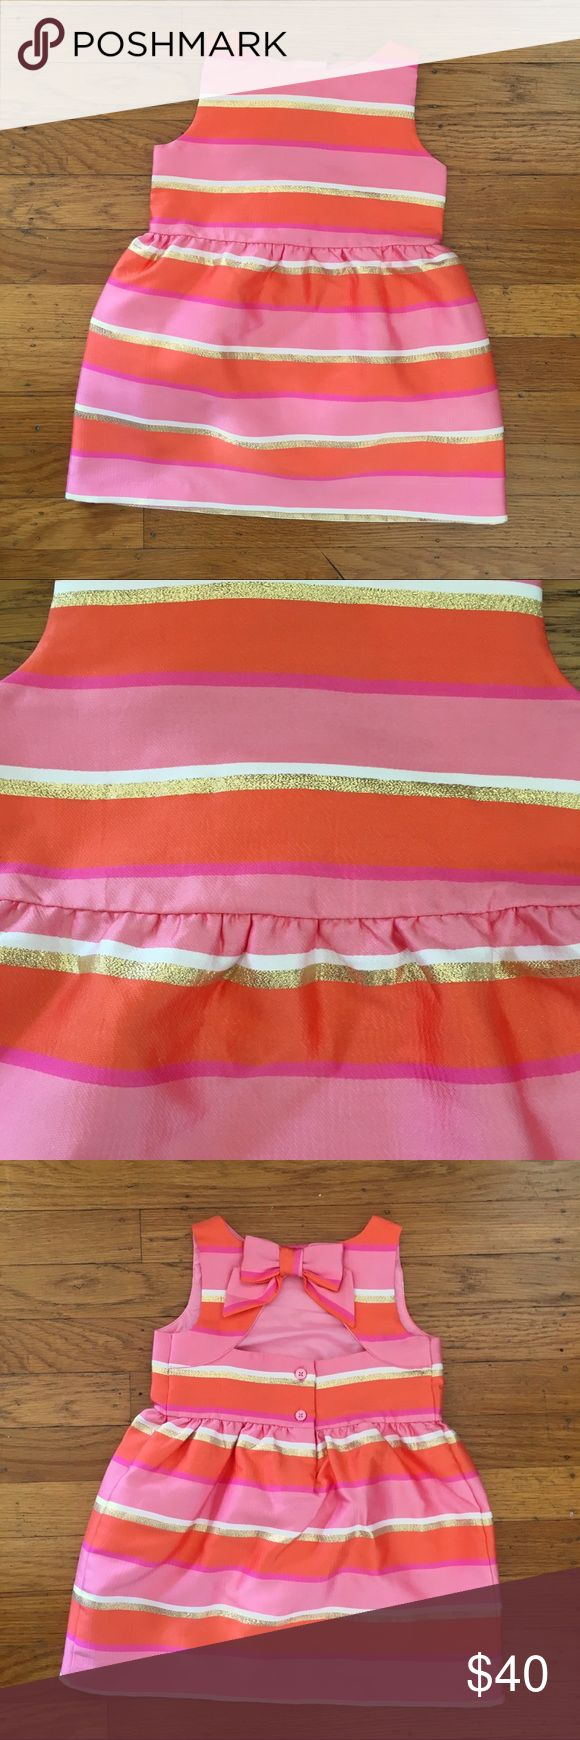 Janie and Jack dress Coral pink orange and gold striped metallic dress.  Cutout back with a bow!  So adorable for a birthday party or special occasion! NWOT Janie and Jack Dresses